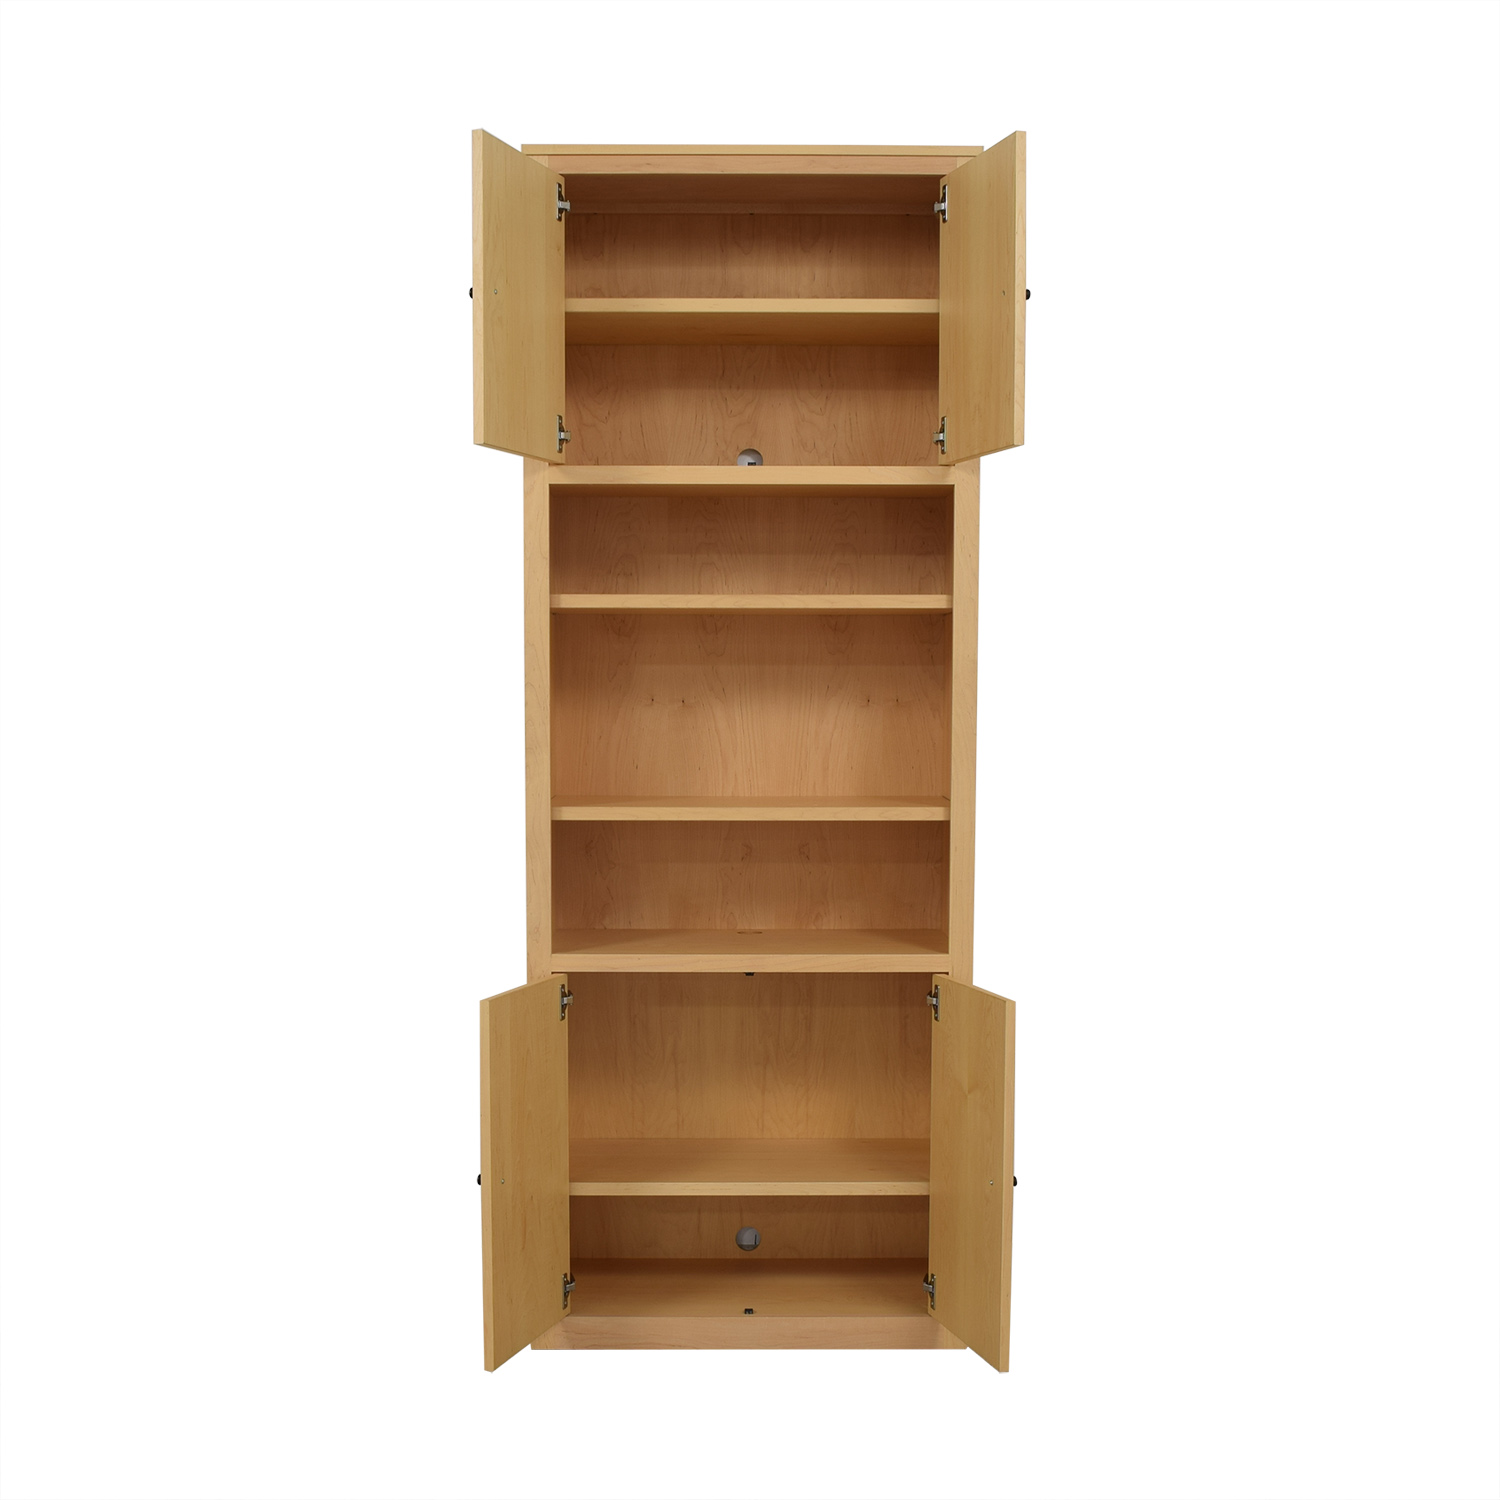 shop Room & Board Woodwind Bookcase with Doors Room & Board Bookcases & Shelving